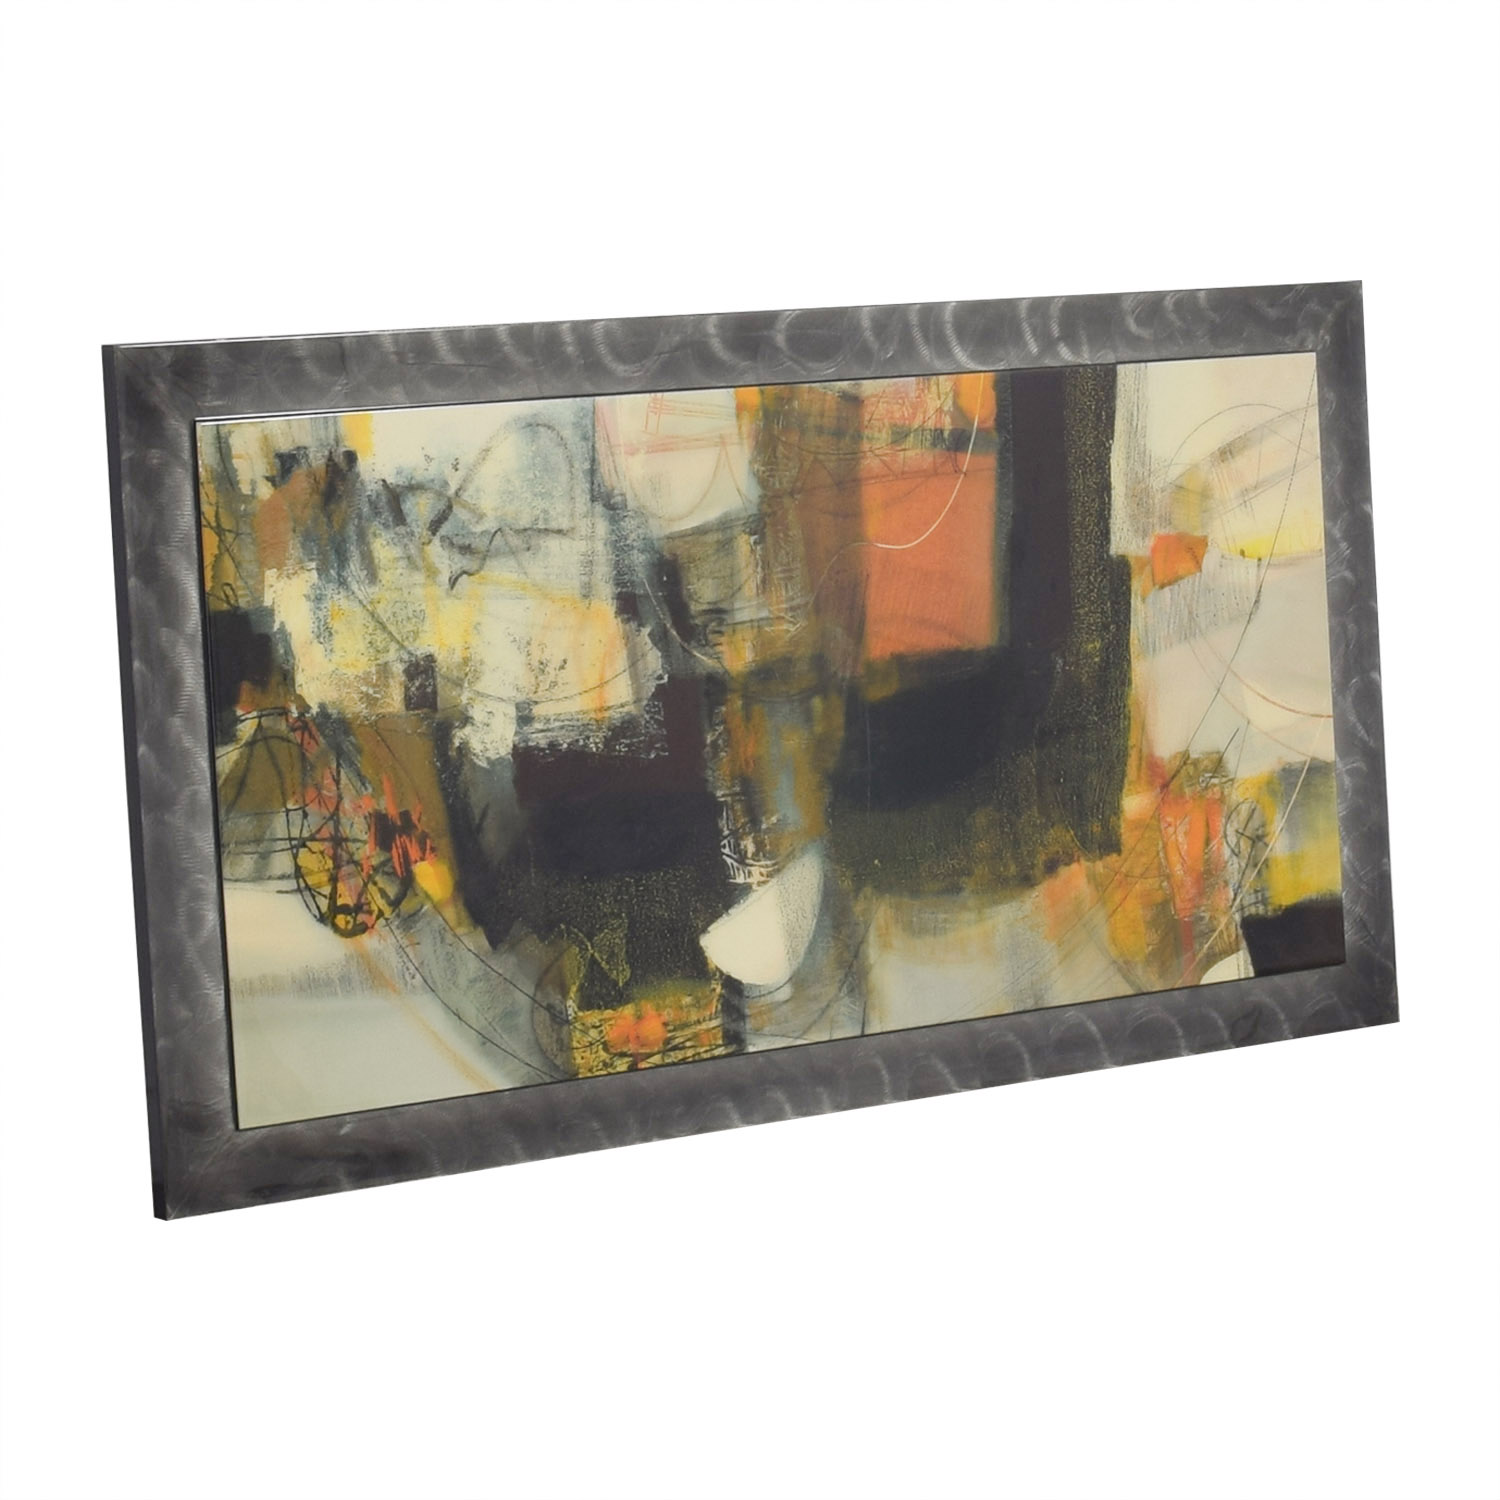 Multi-Colored Art Work in Pewter Frame sale